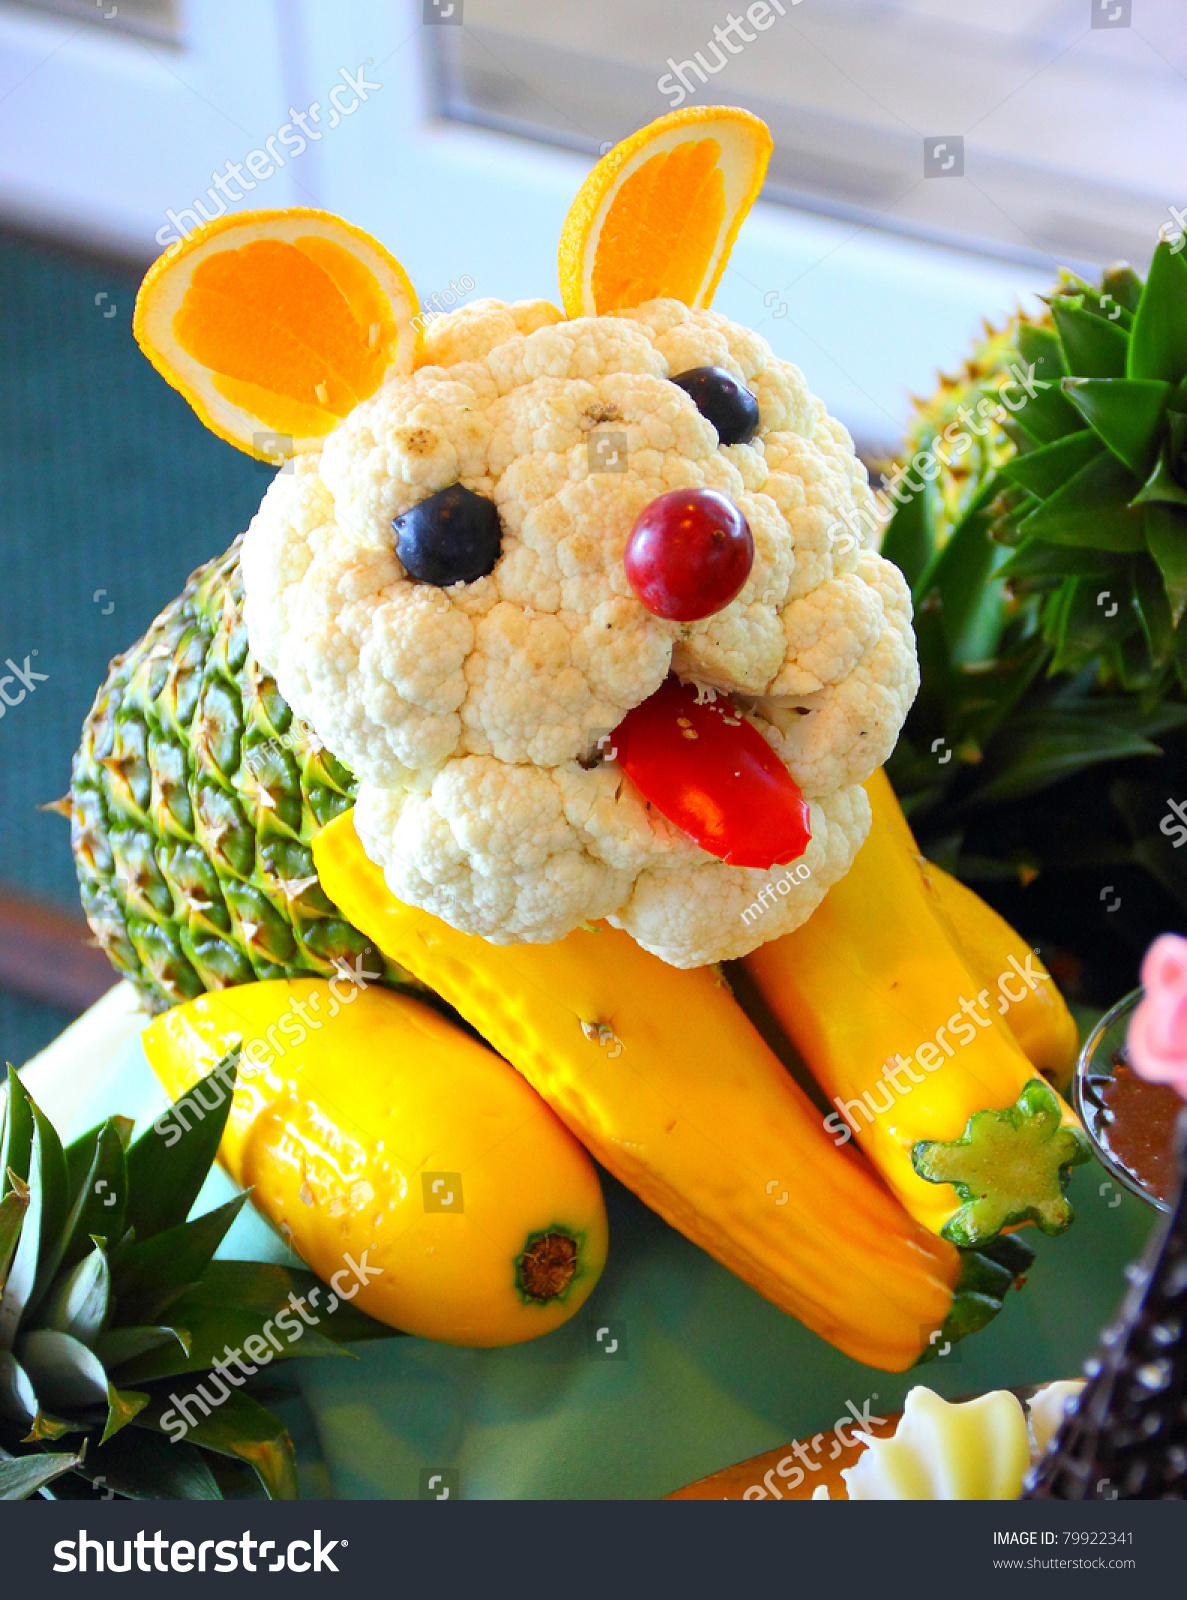 Dog made vegetables fruits food carving stock photo